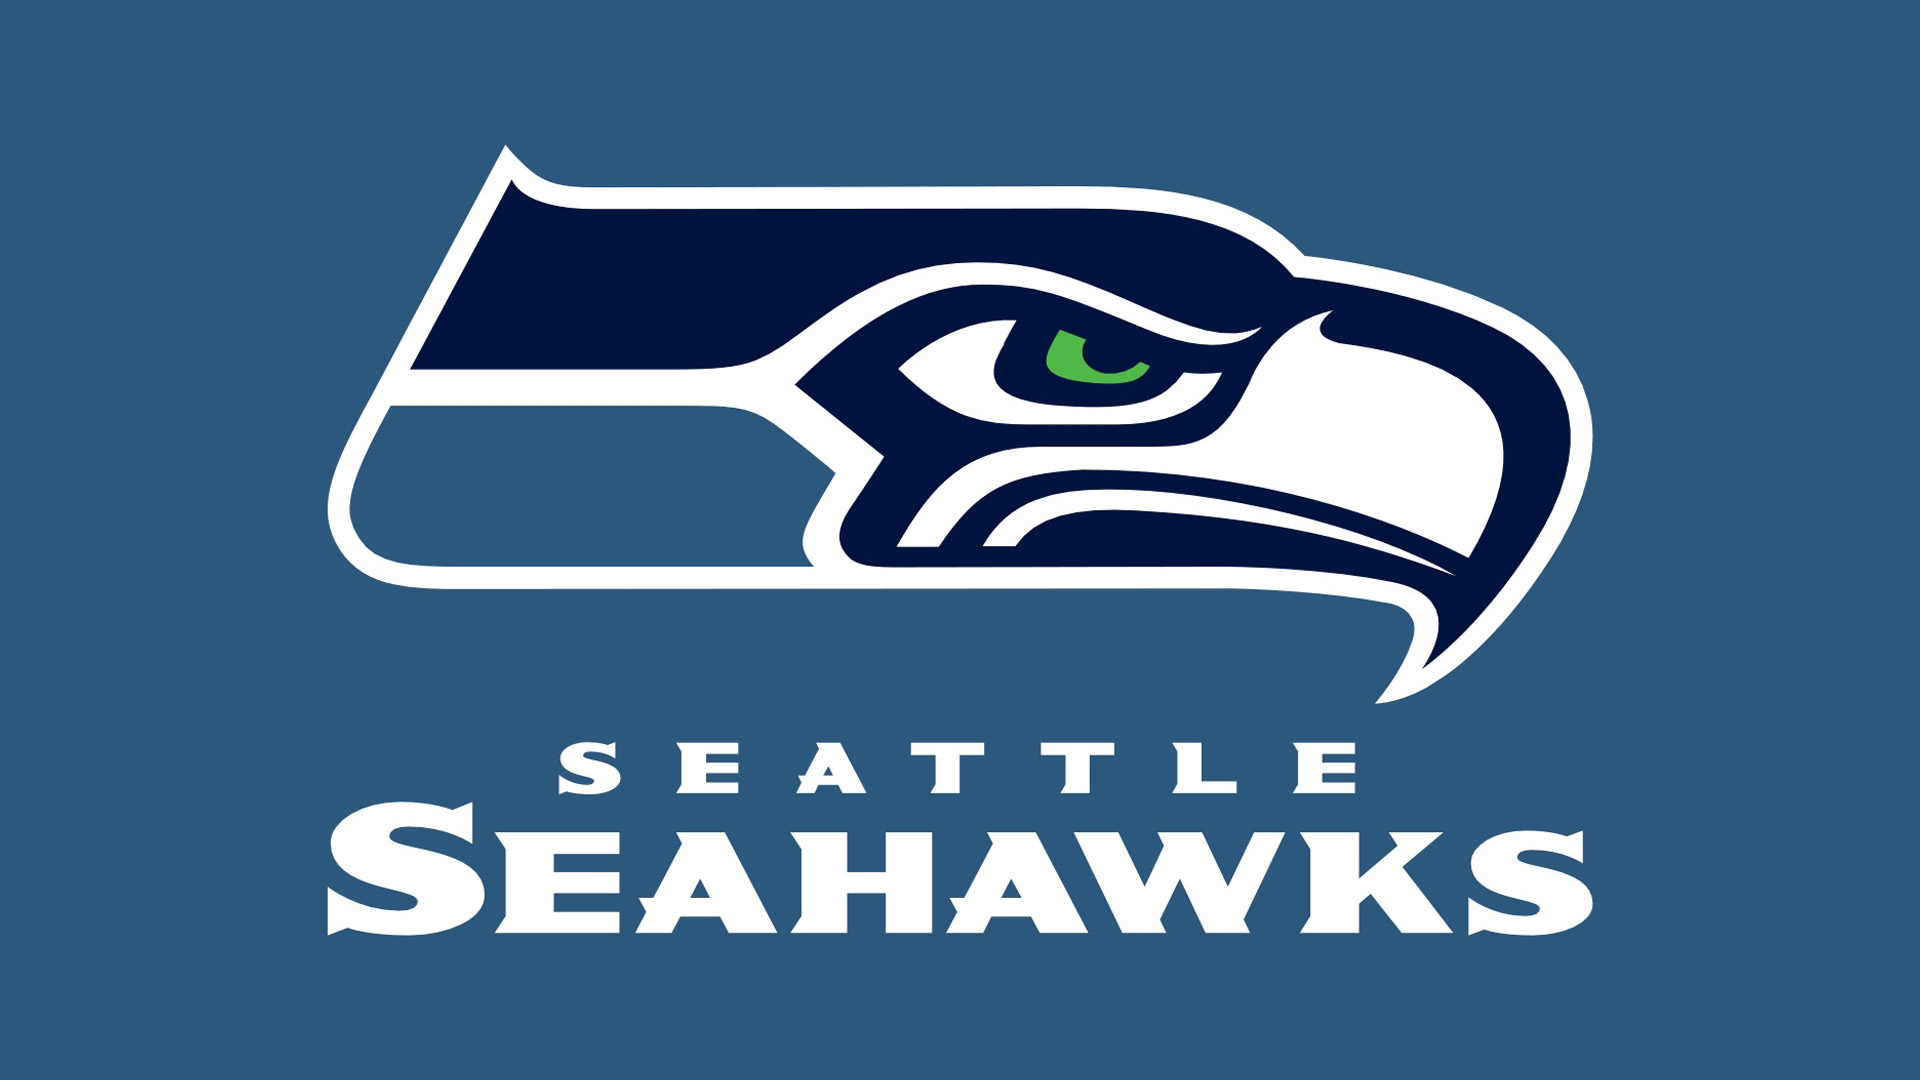 seahawks high resolution wallpaper - photo #2